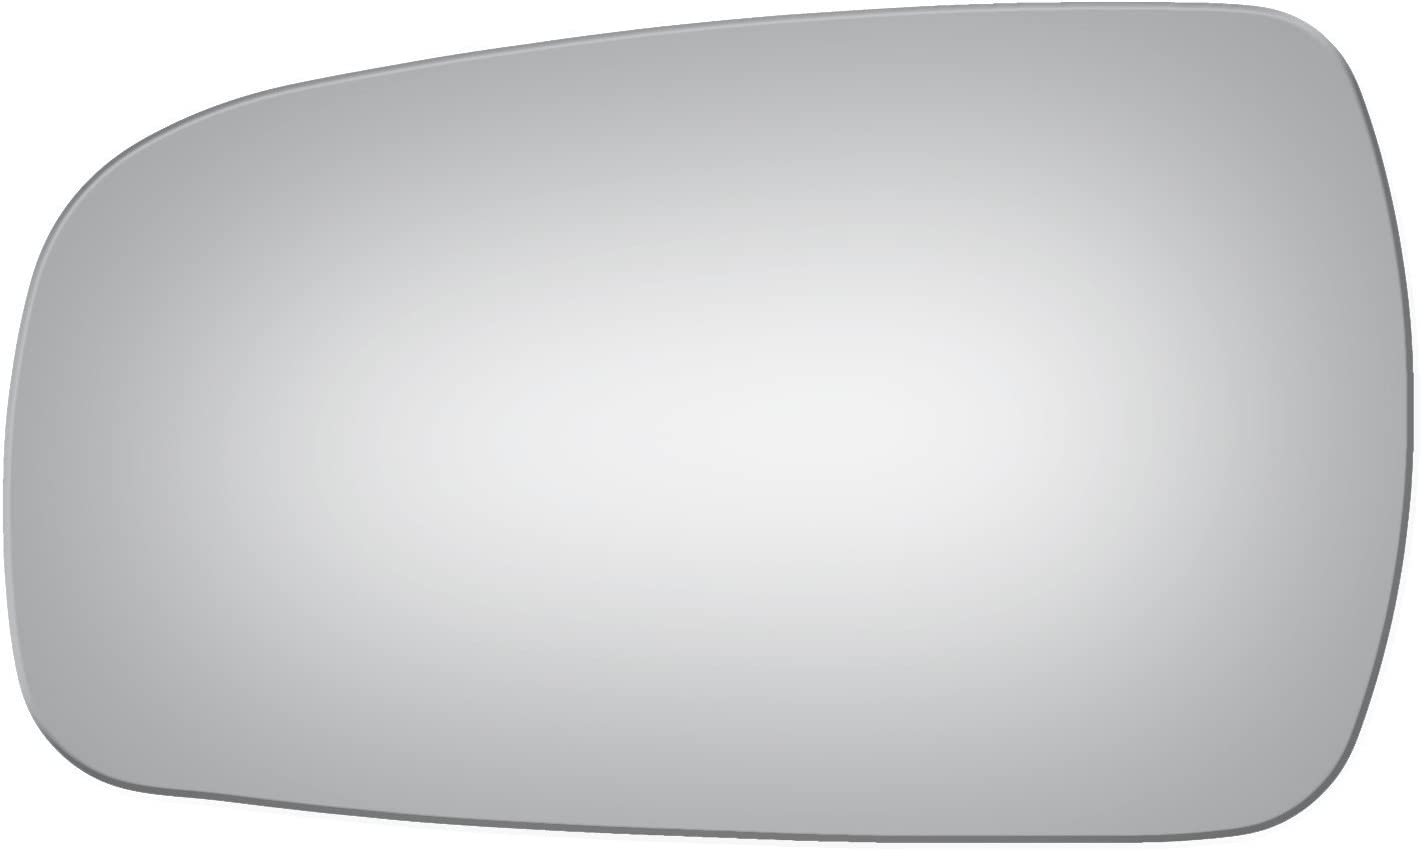 LEFT DRIVER SIDE LH FLAT MIRROR GLASS FOR 95-99 NISSAN MAXIMA 96-99 INFINITI I30